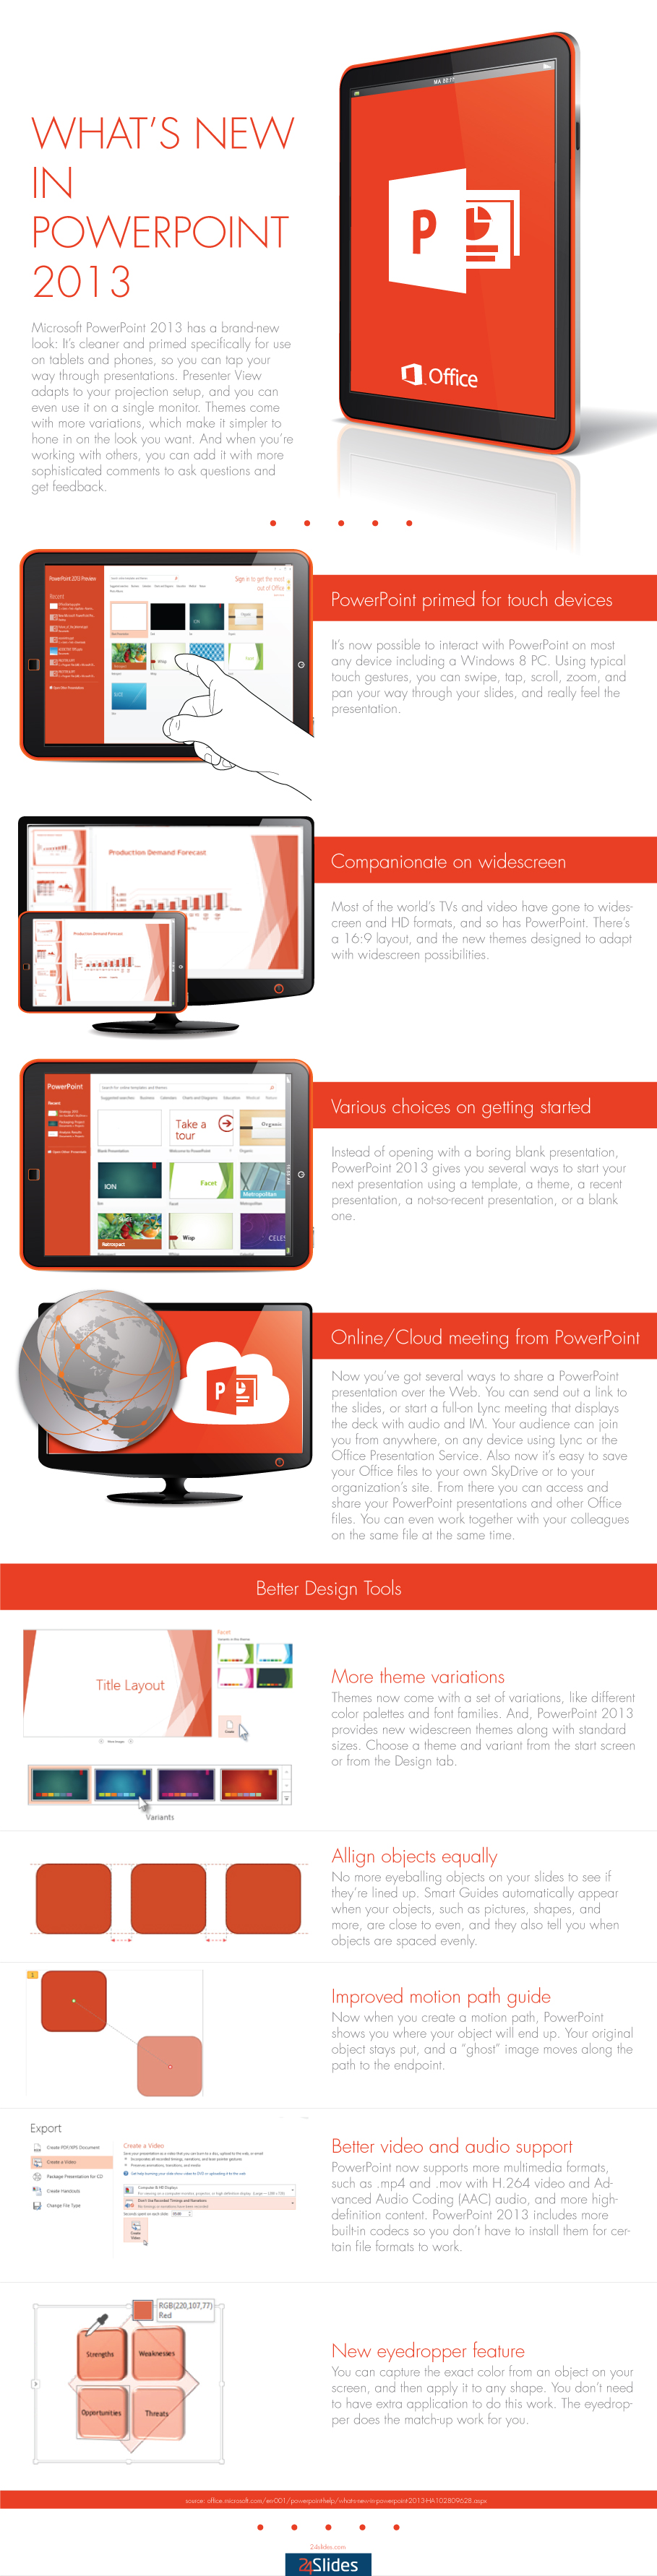 Infographic PowerPoint 2013